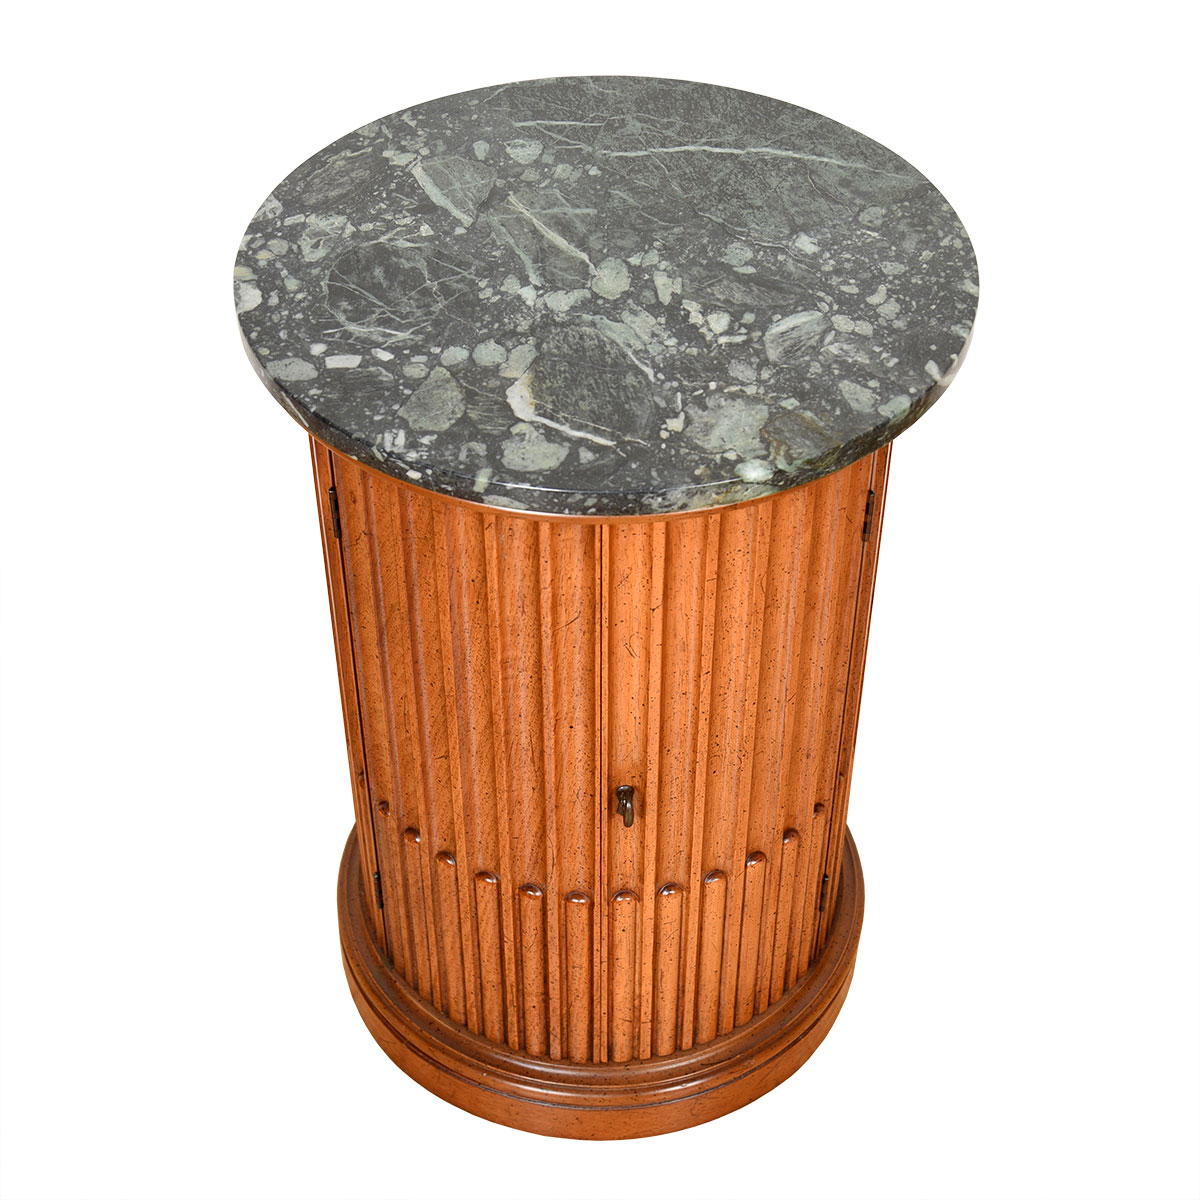 Green Italian Marble Accent Table with Storage